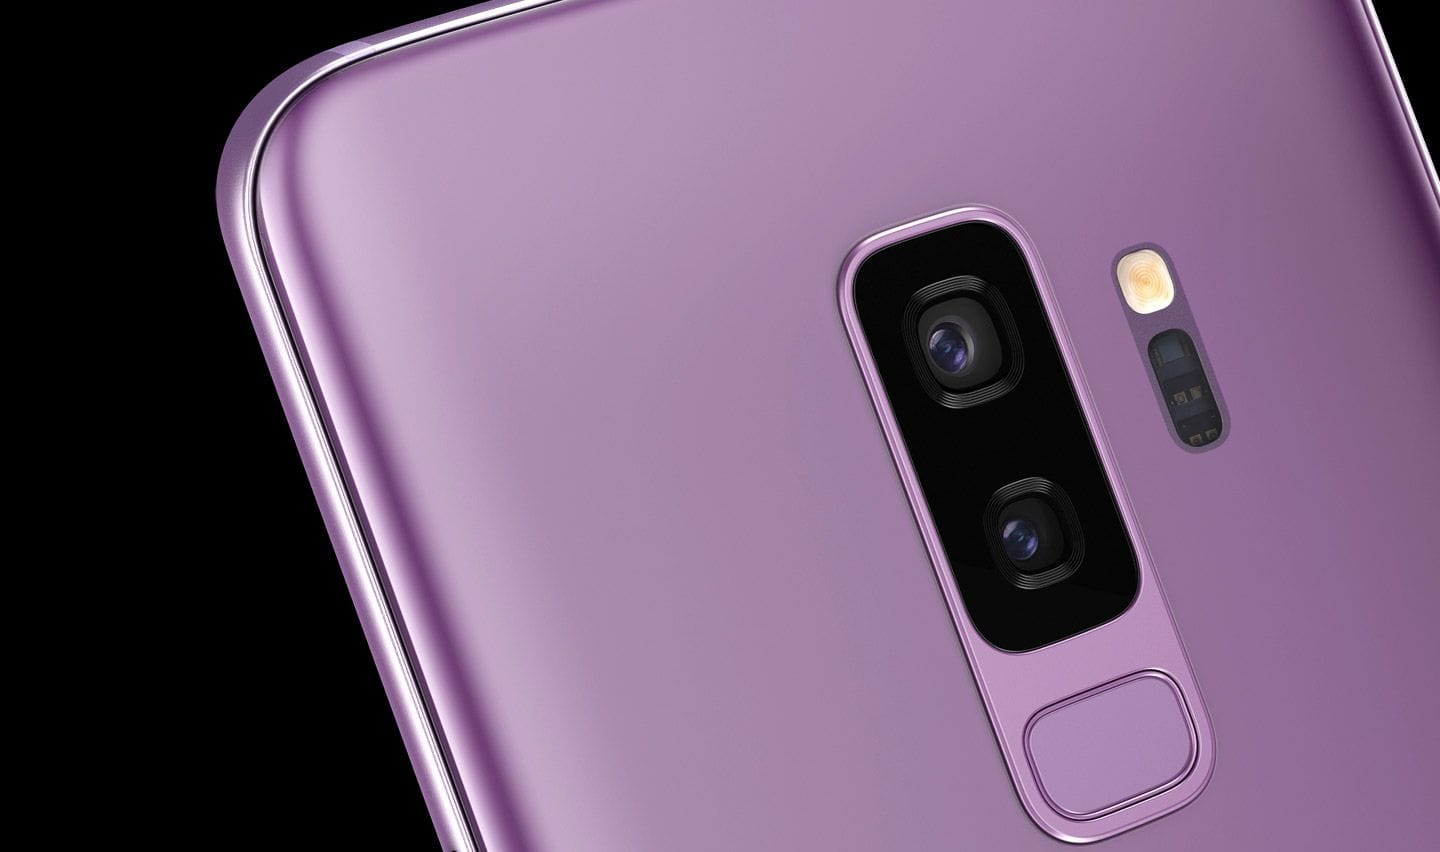 Samsung Galaxy S10 rumors about camera